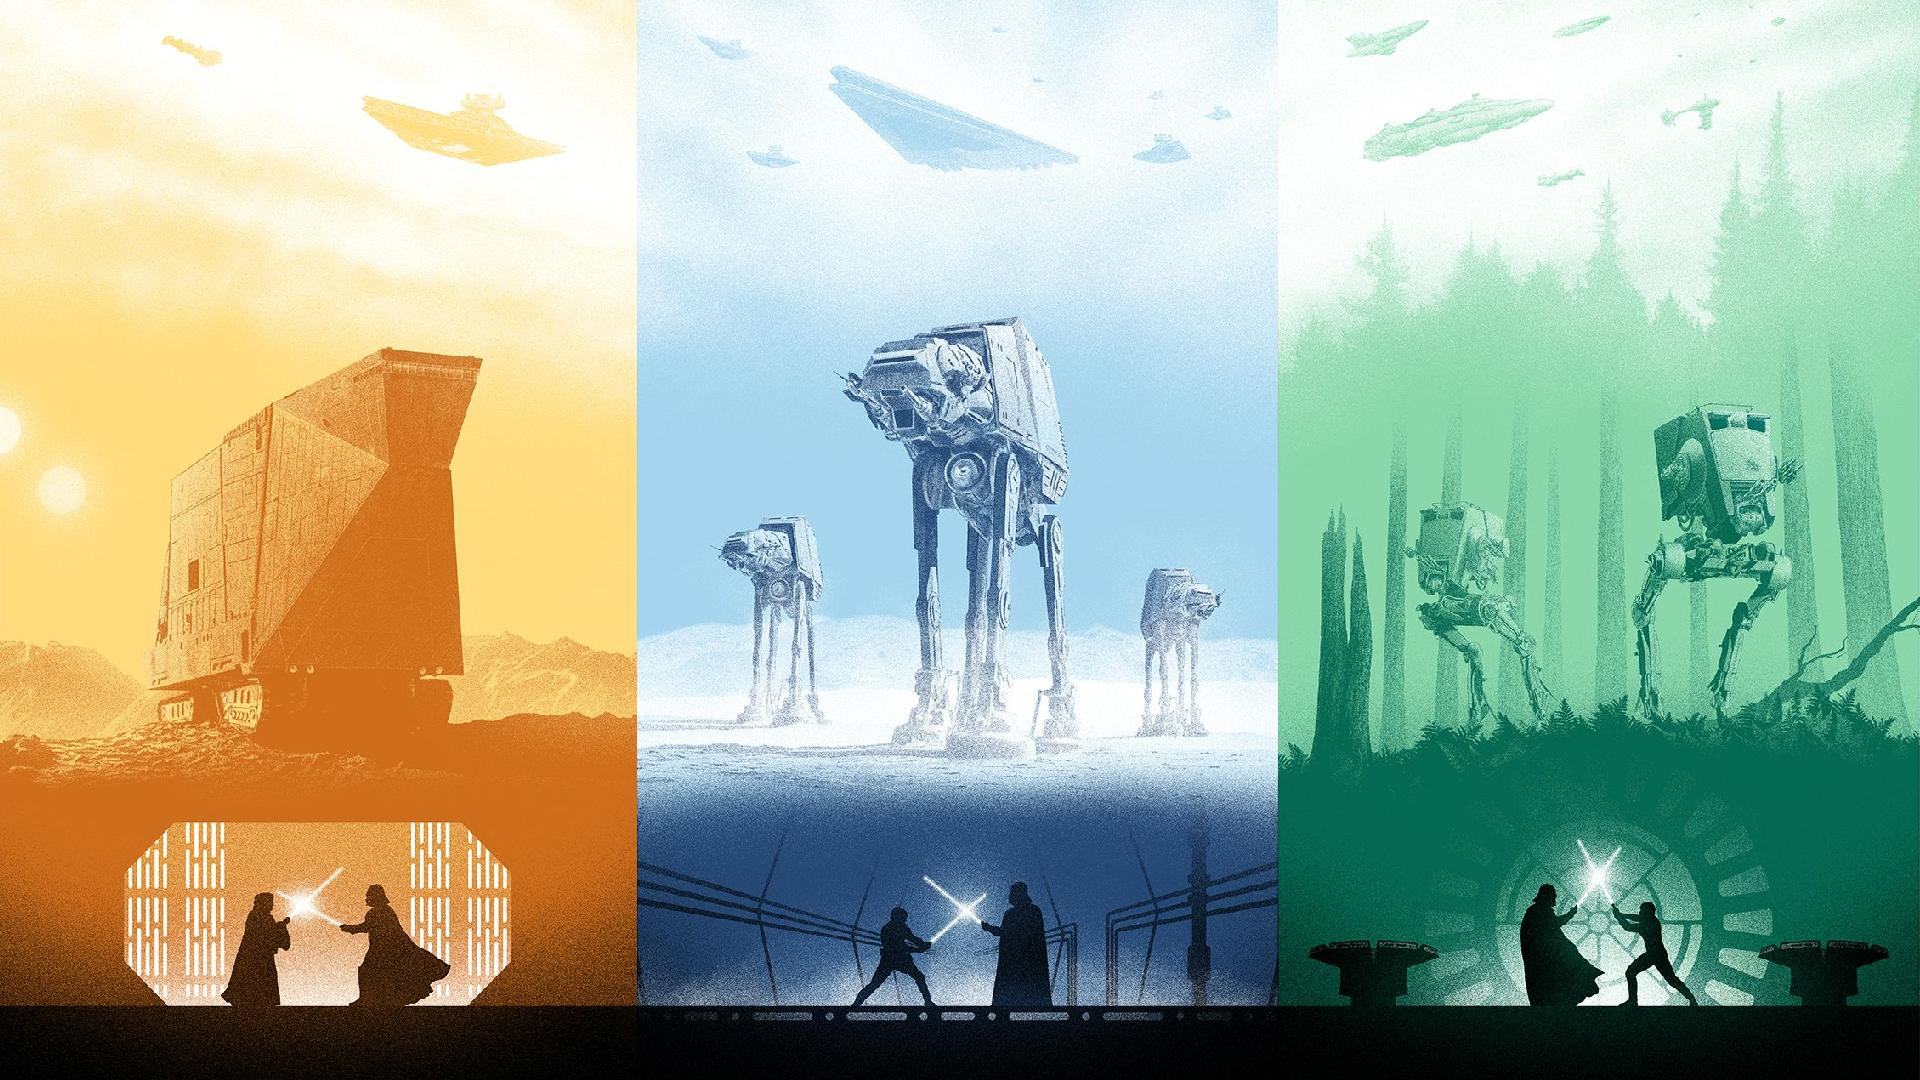 Star Wars 1900x1200 Hd Wallpapers Top Free Star Wars 1900x1200 Hd Backgrounds Wallpaperaccess